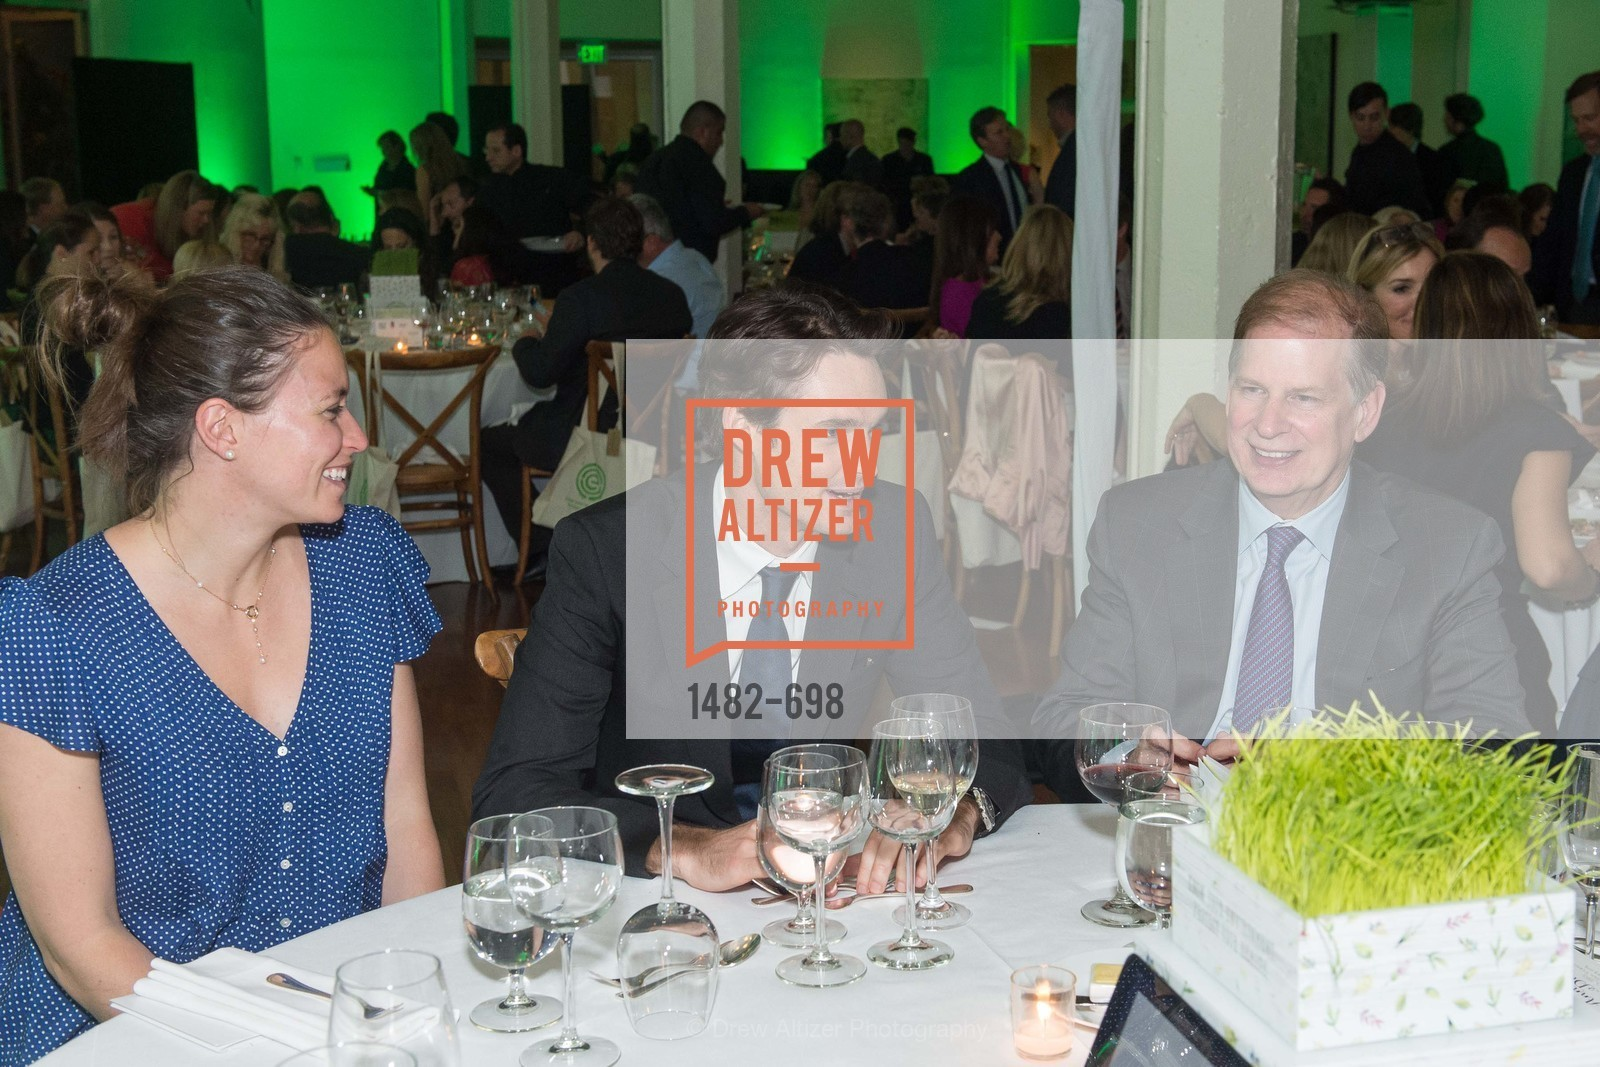 Myriam Desmarais, Nicolas Desmarais, Robert Fetherstonehaugh, EWG's 6th Annual Earth Dinner, US, May 6th, 2015,Drew Altizer, Drew Altizer Photography, full-service agency, private events, San Francisco photographer, photographer california